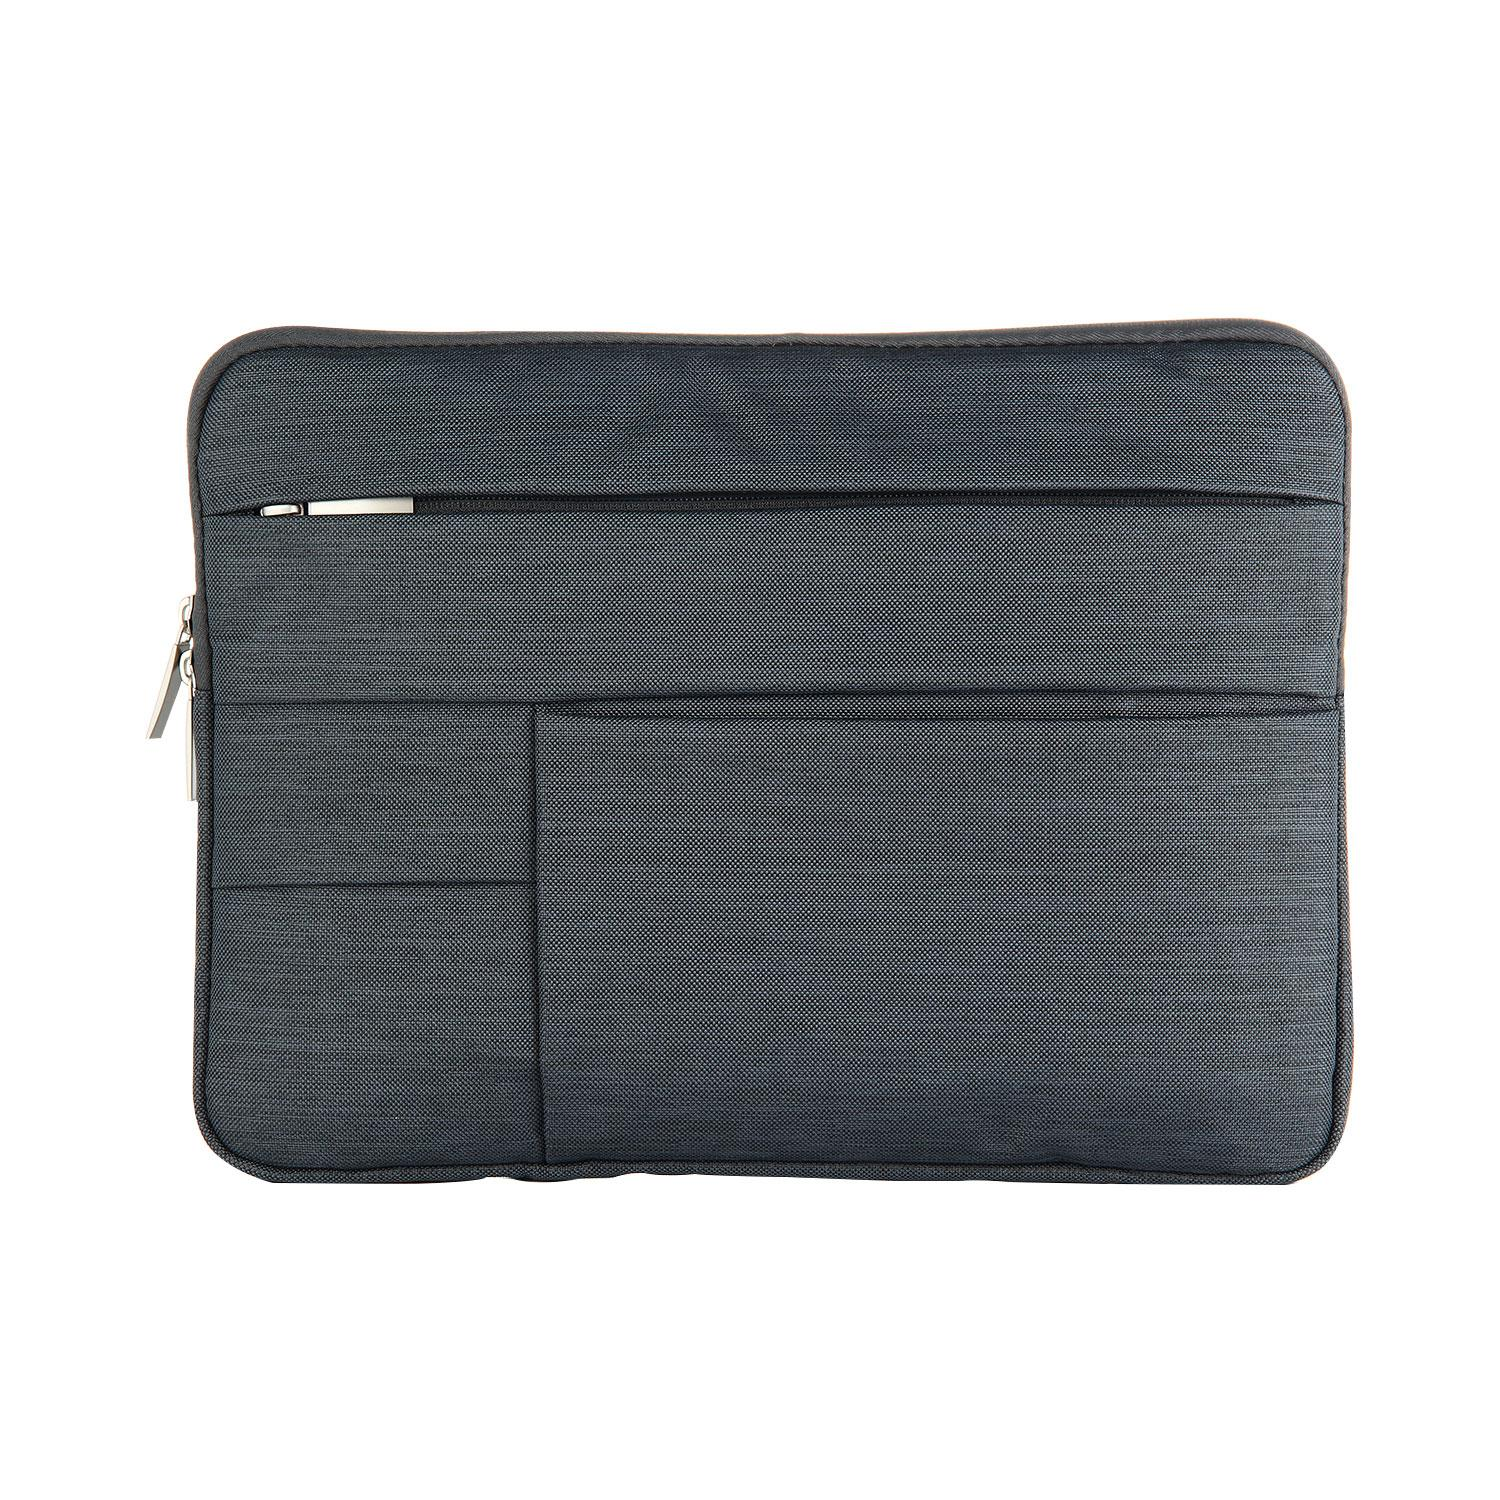 617207b6d niceEshop 14'' Multifunctional Laptop Case Cover Bag Large Capacity Notebook  Sleeve Case Pouch for